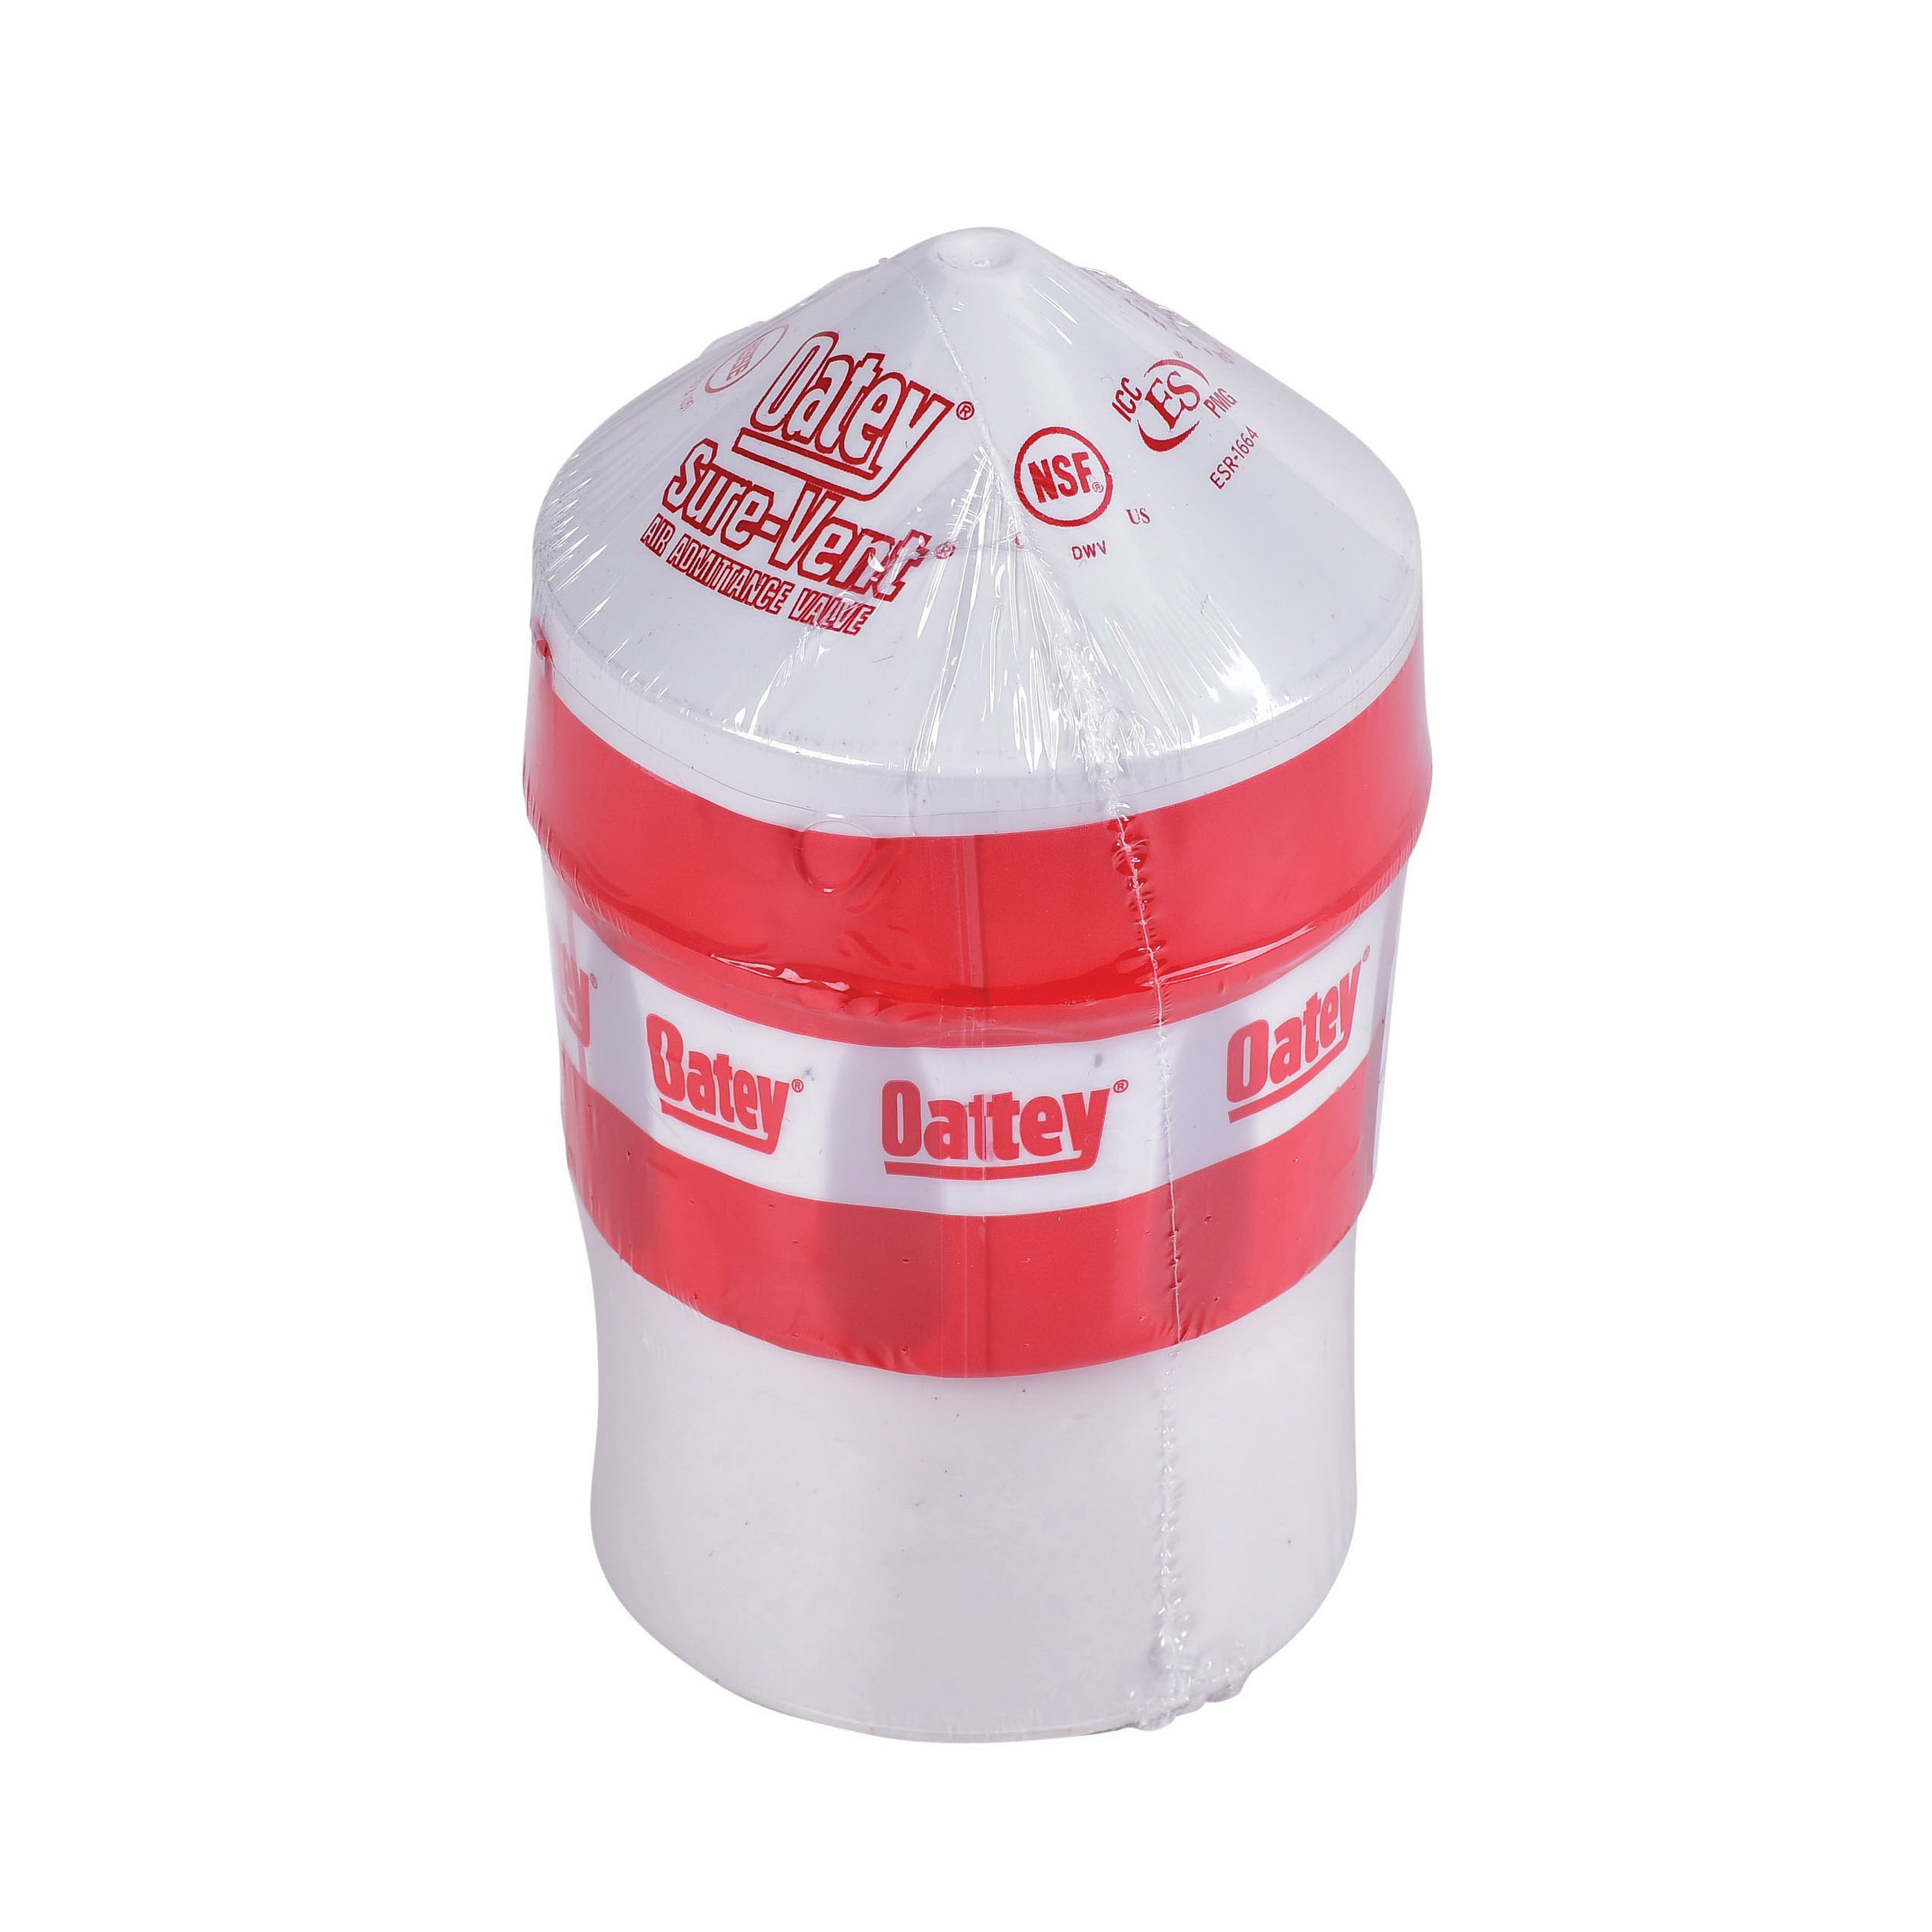 Oatey® SURE-VENT® 39220 PVC SCH 40 Air Admittance Valve with Adapter, 2 in, NPT